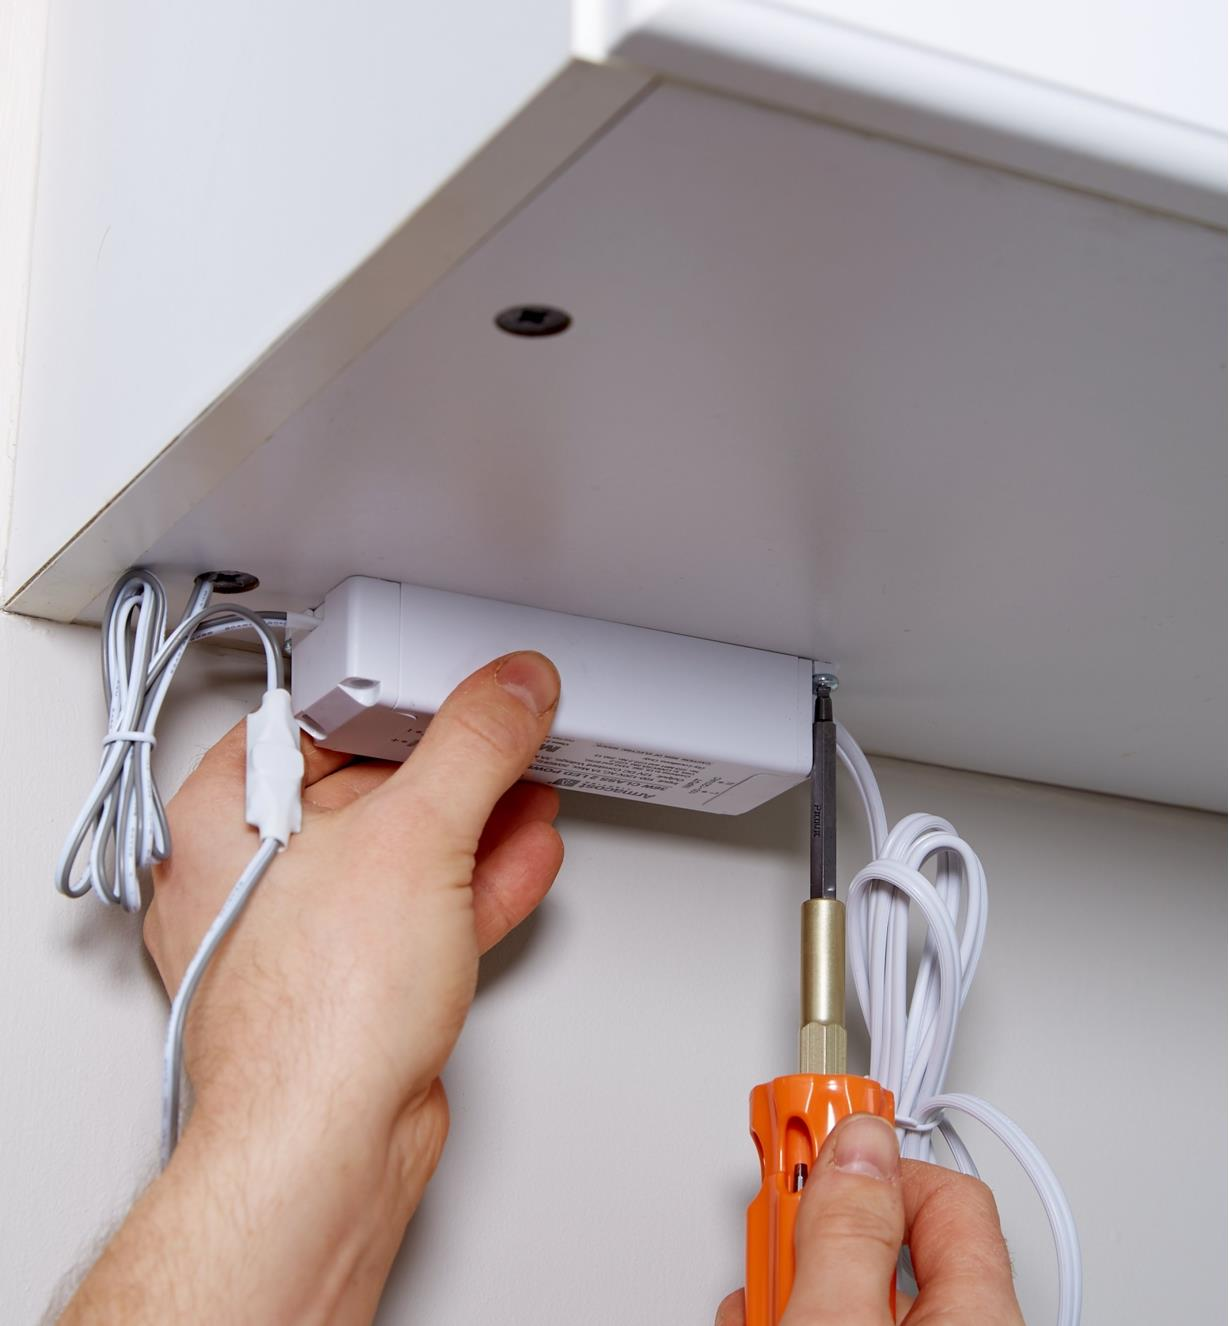 Mounting the power-supply unit of a plug-in LED tape lighting kit